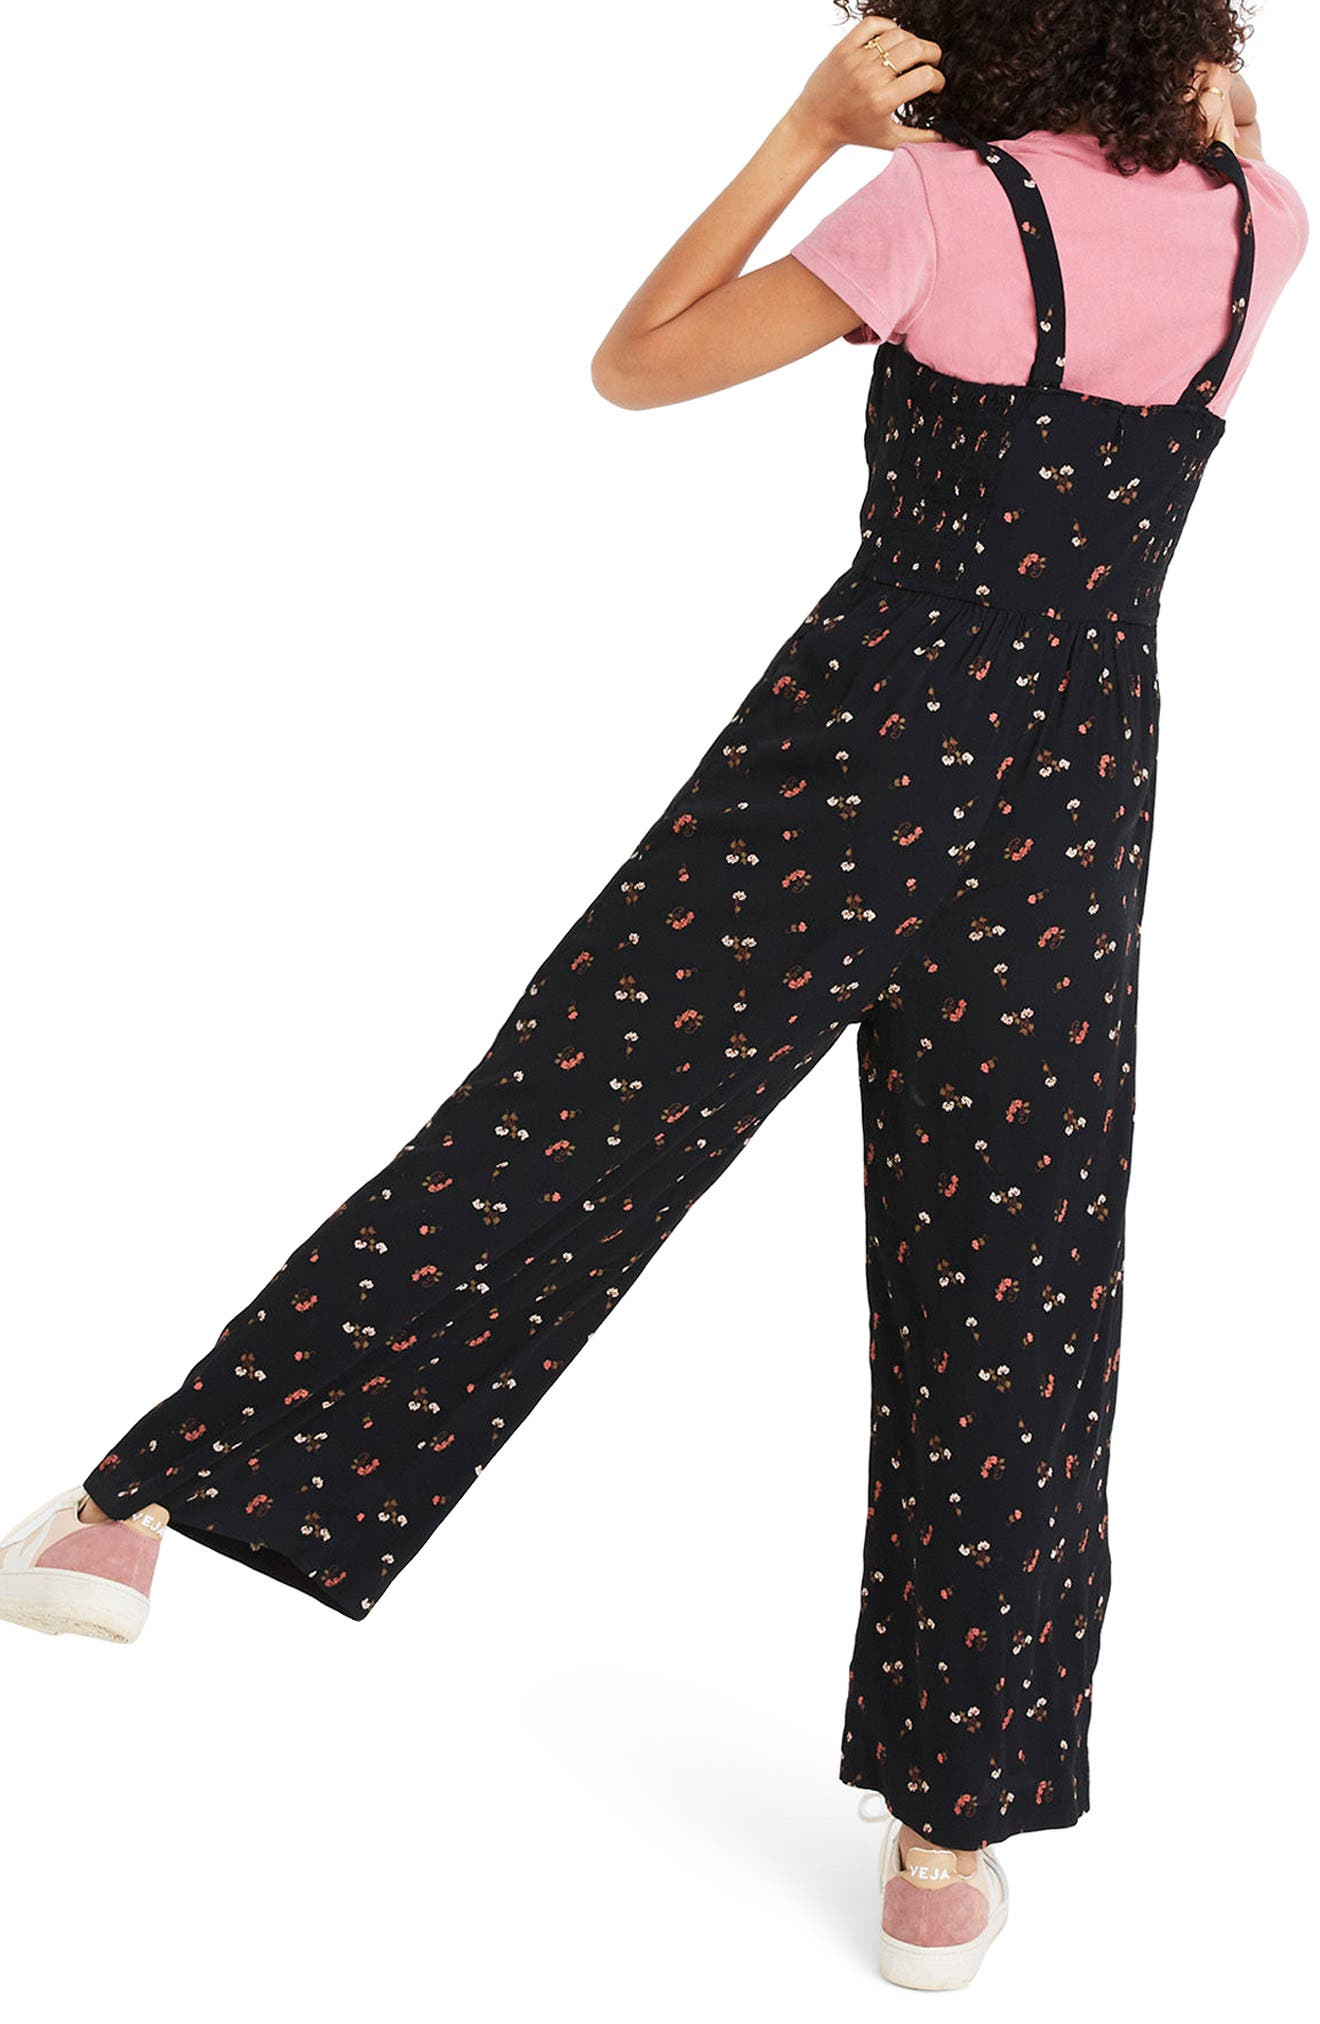 Flower Toss Smocked Crop Jumpsuit,                             Alternate thumbnail 2, color,                             Vine True Black